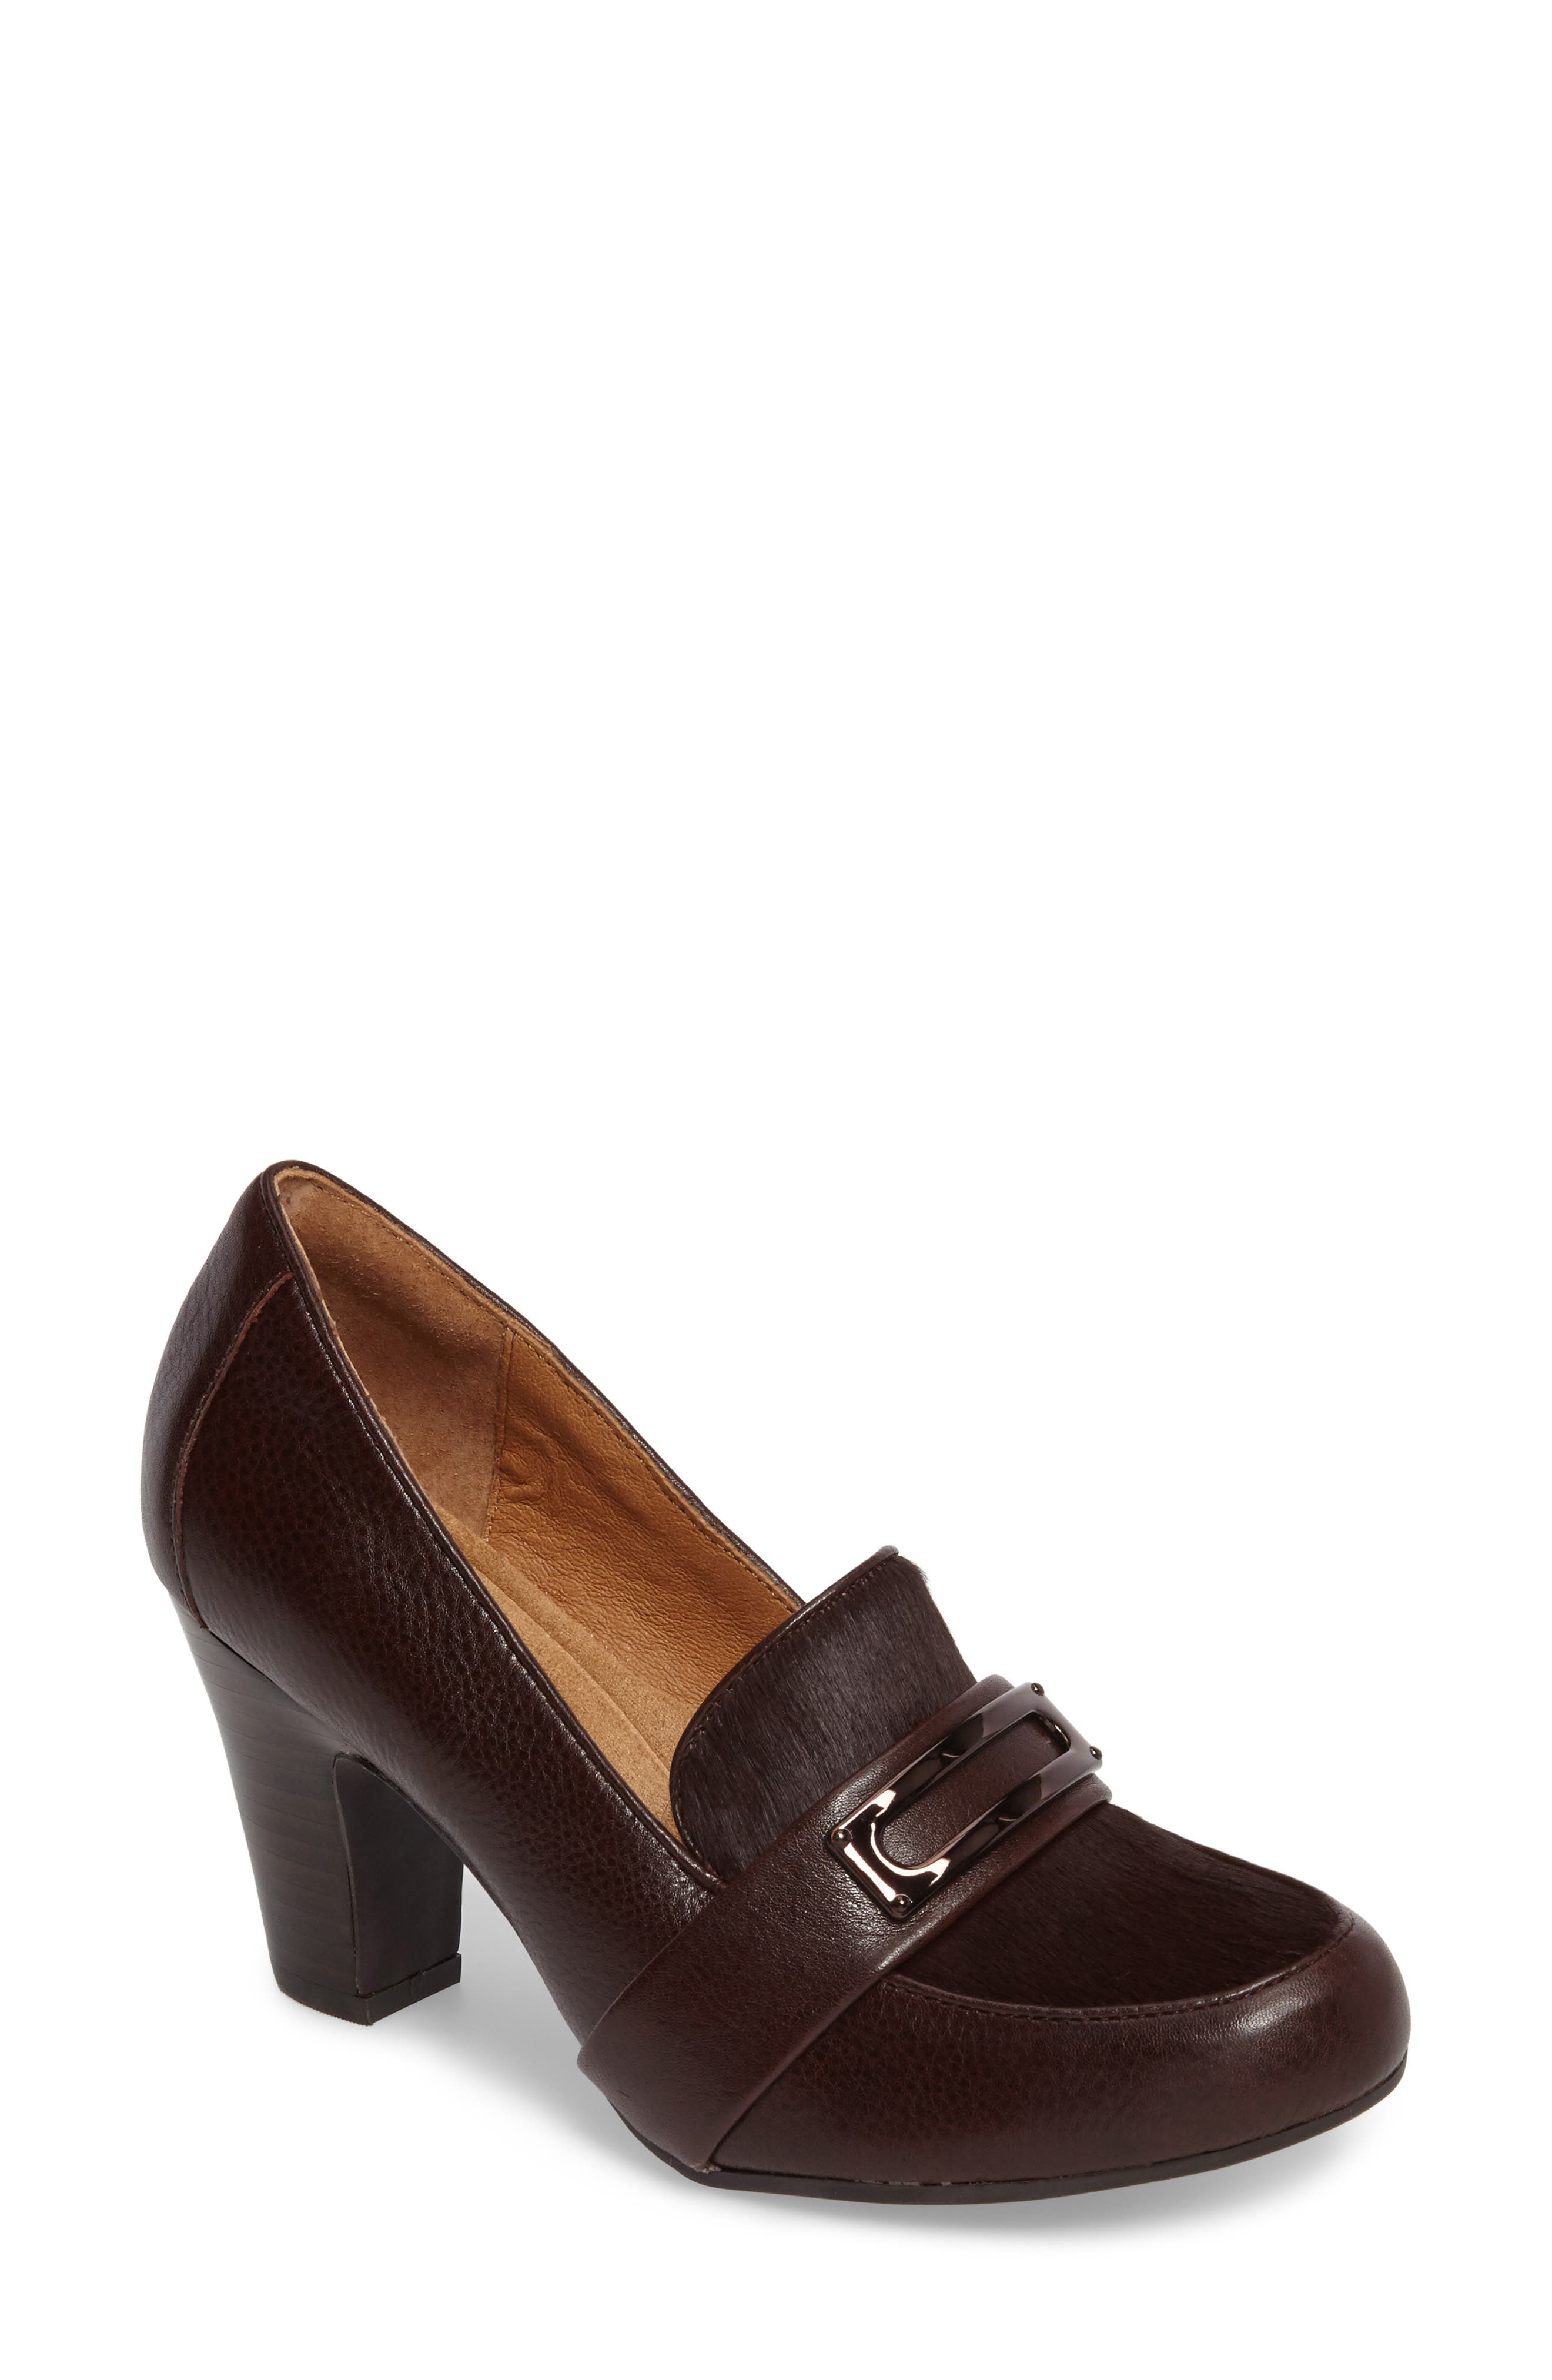 Misty Pump,                         Main,                         color, Mahogany Leather